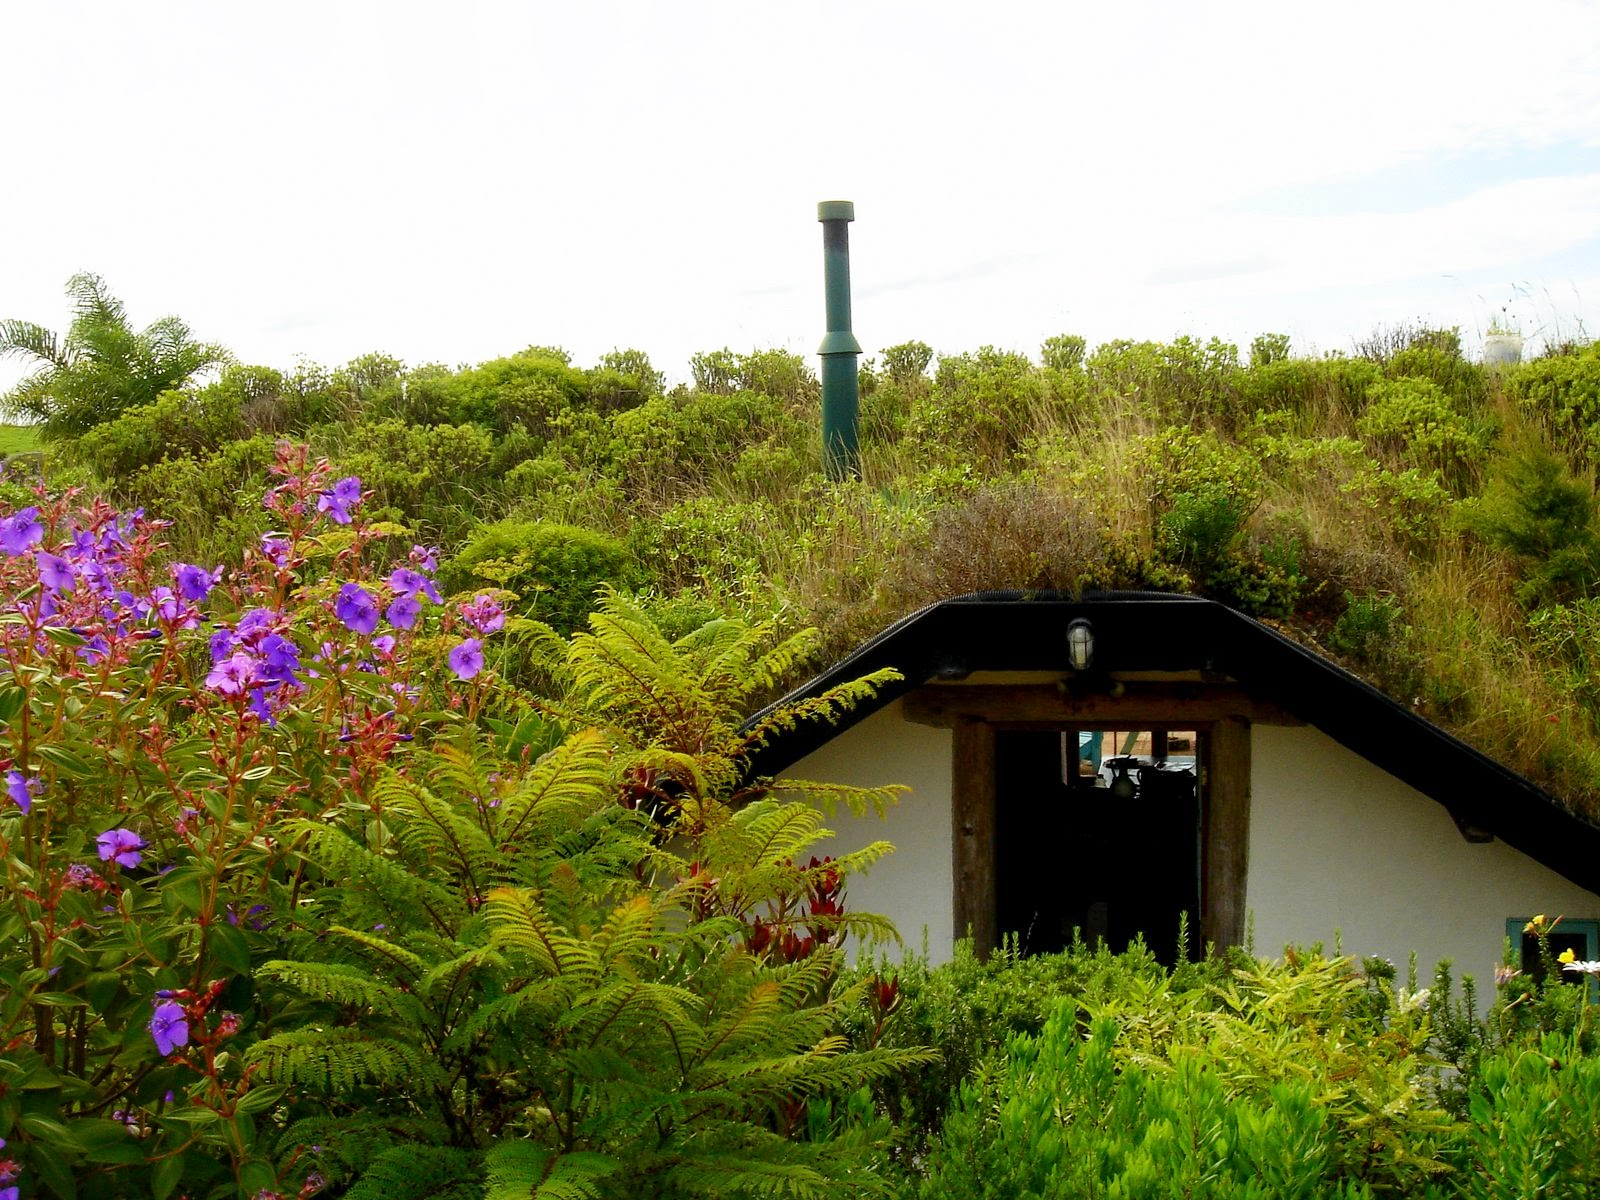 Living Roof Gardens Combining The Beauty Of Nature With The Wonderful  Benefits Of Passive Energy Insulation.